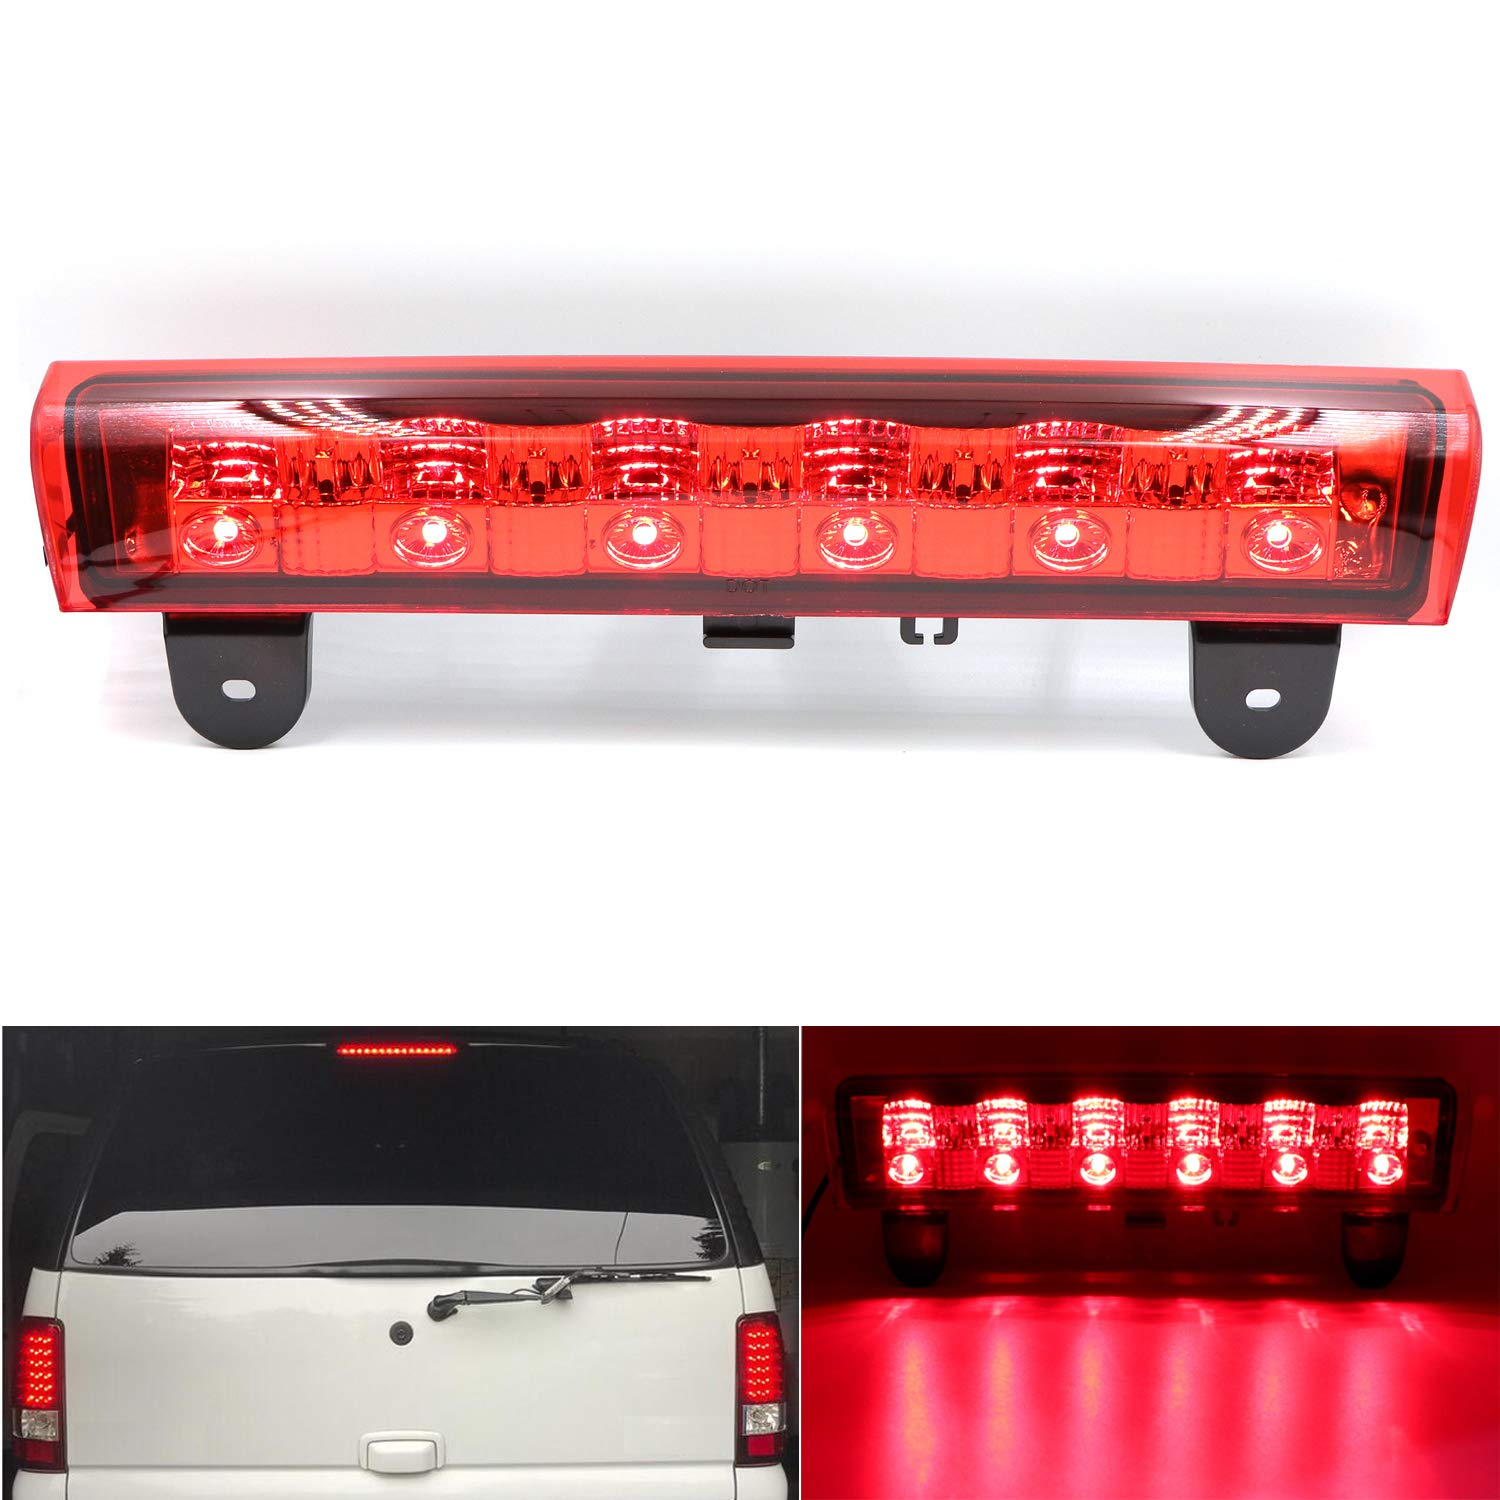 Full LED Third 3rd Brake Cargo Light Center High Mount Stop Light Replace fit for 2000-2006 Chevy Suburban Tahoe (Smoke) Yepwell